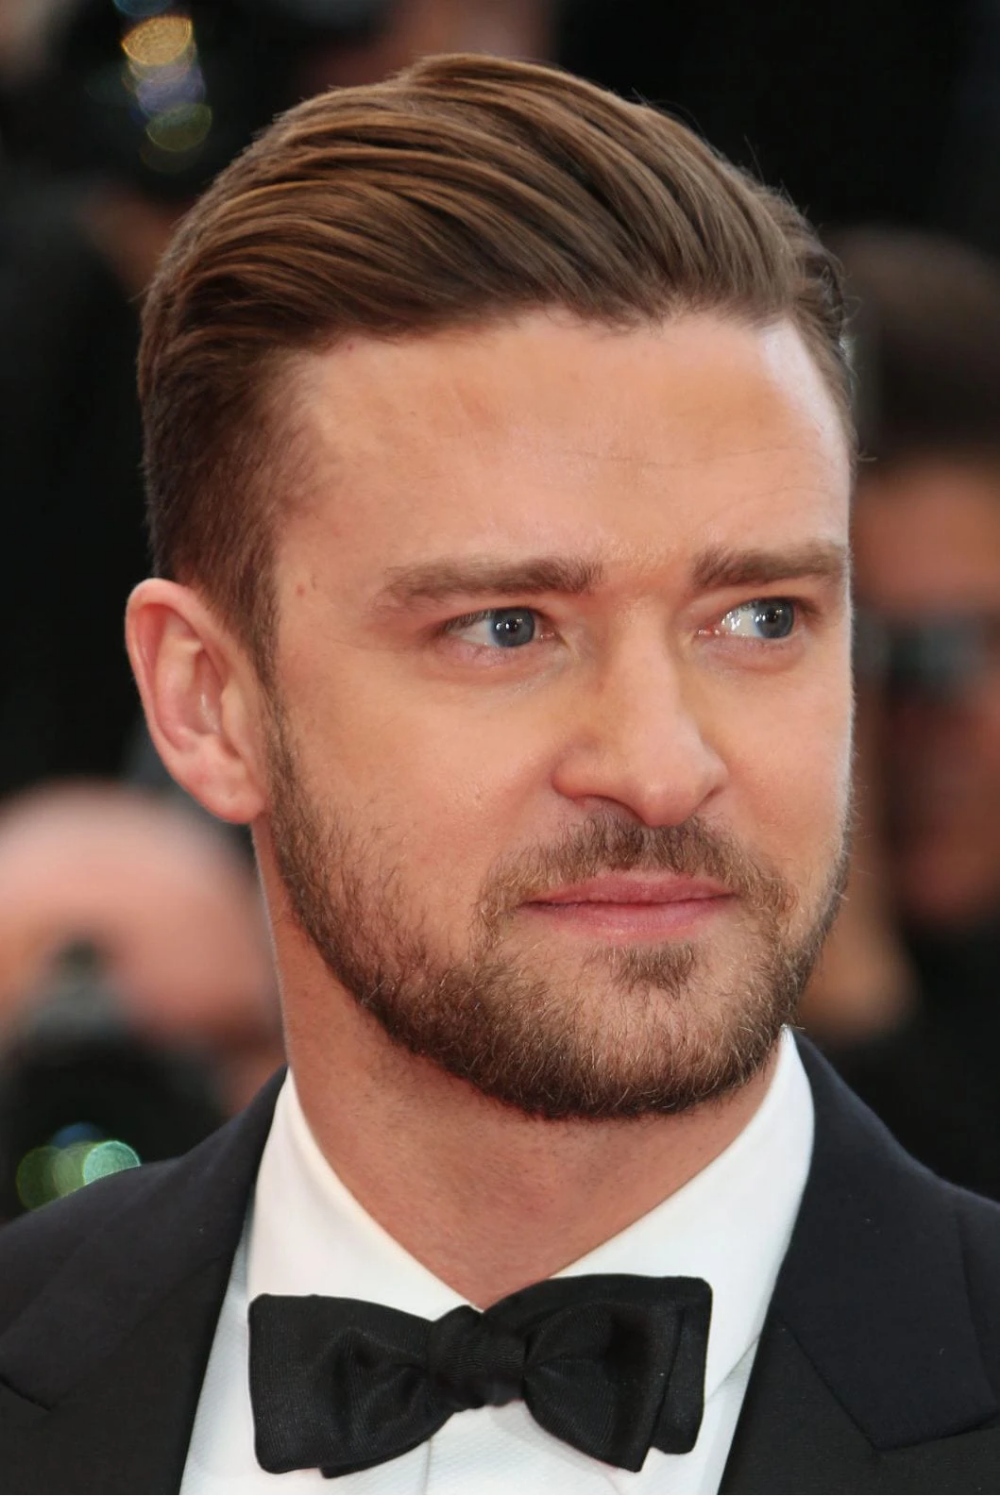 Nine Awesome Haircuts For Men With Round Face In 2020 Round Face Men Round Face Haircuts Hairstyles For Round Faces